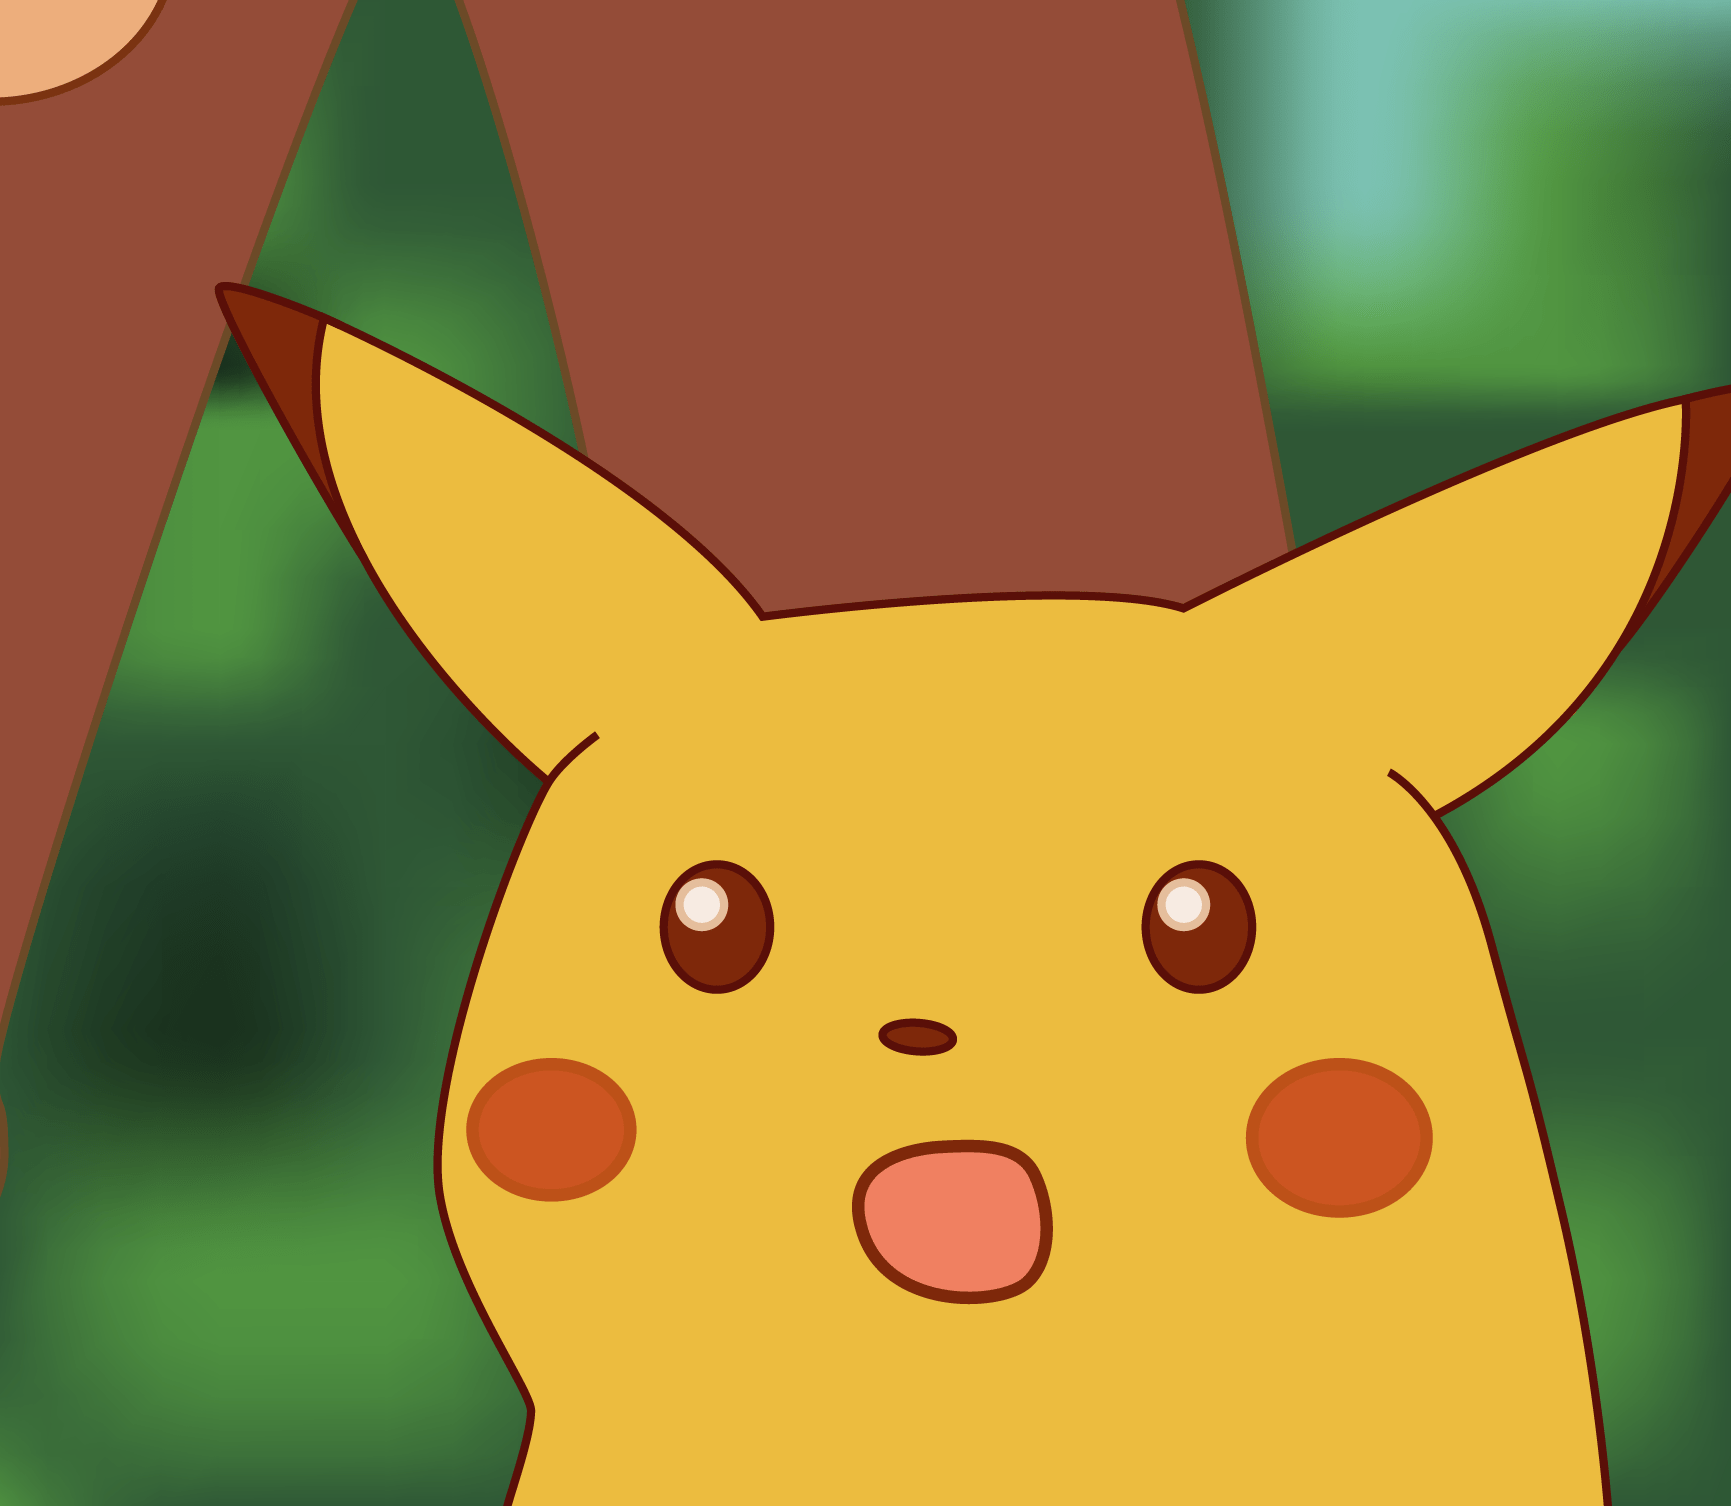 shocked Pikachu meme